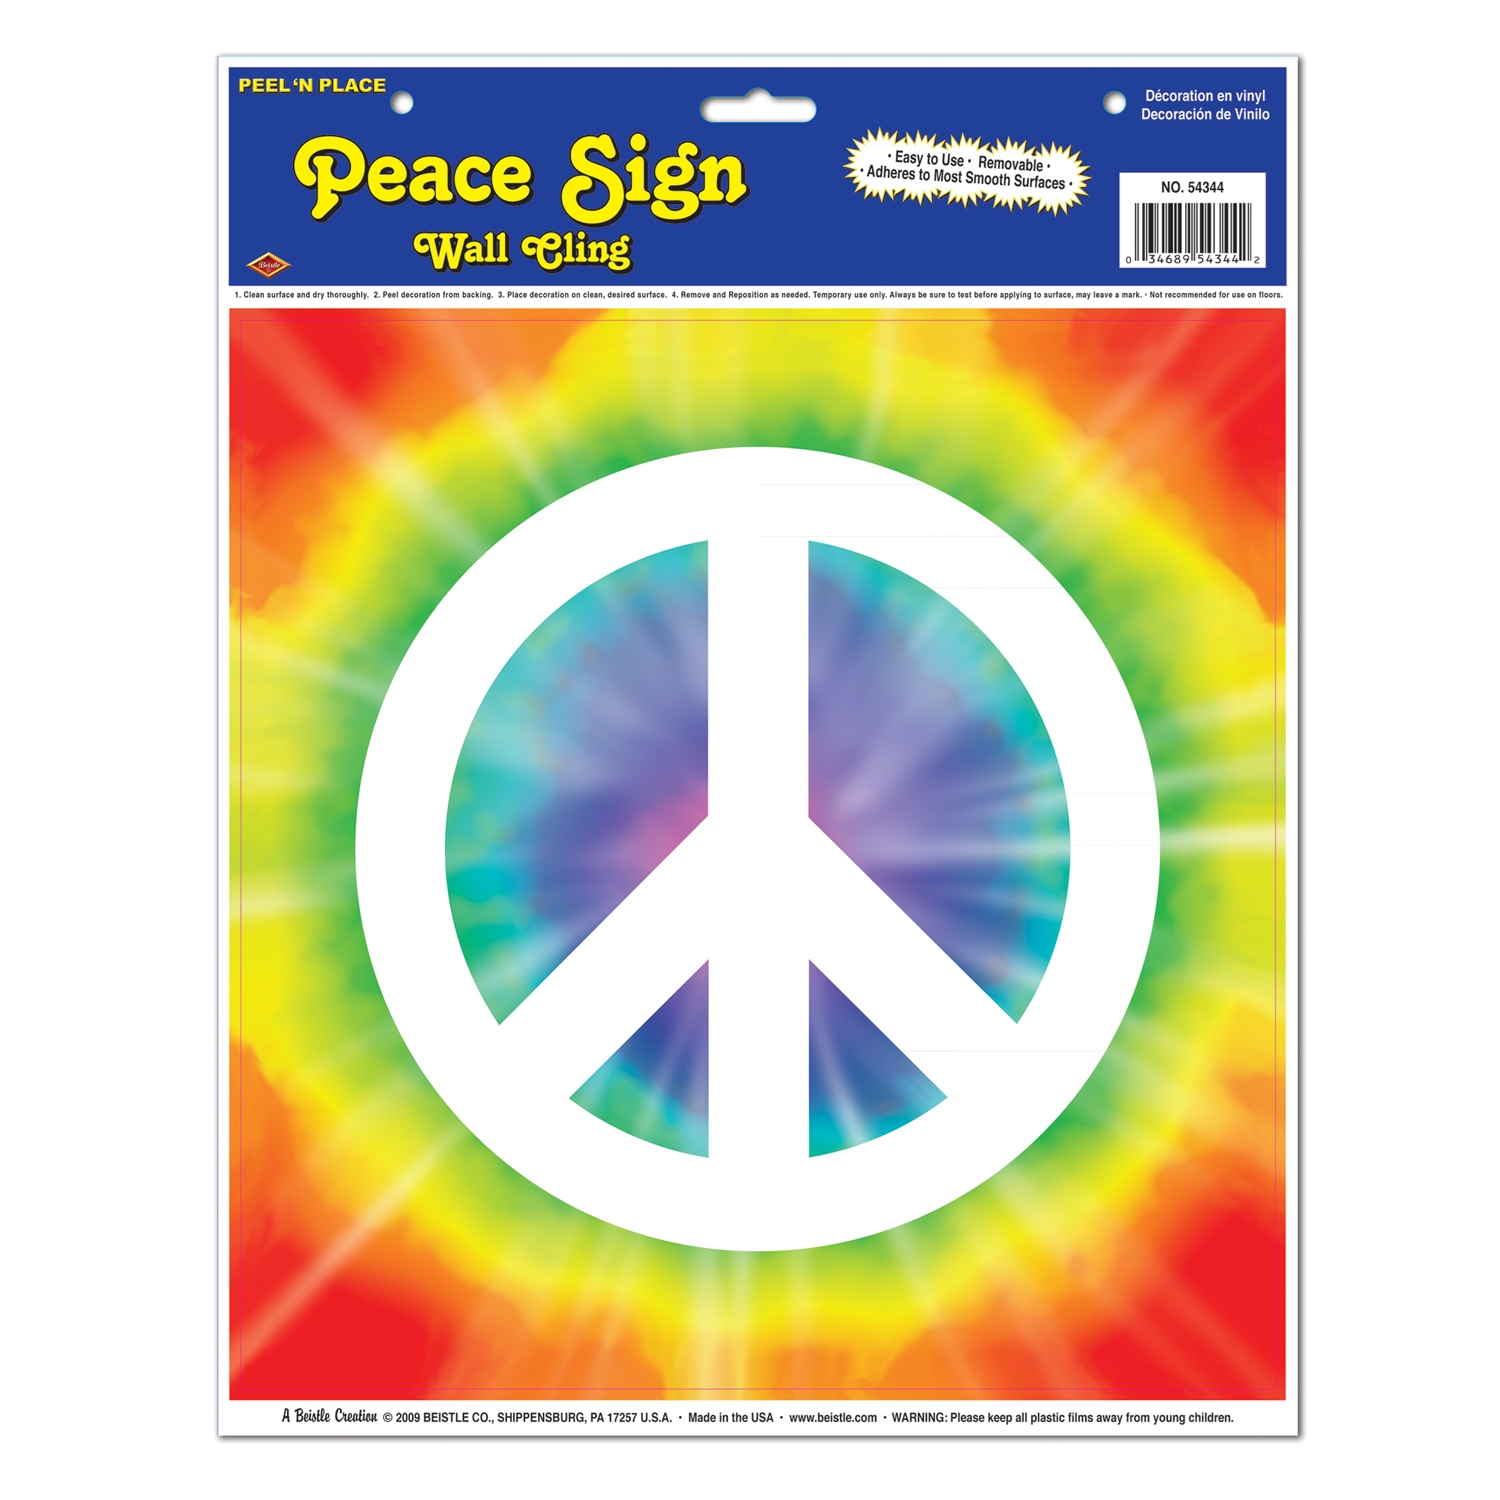 Peace Sign Peel N Place (Pack of 12) 1960s, Tie-Dye, Peace Signs, Wall Clings, Cheap wall decor, Retro party supplies, Wholesale decorations, Inexpensive peace sign